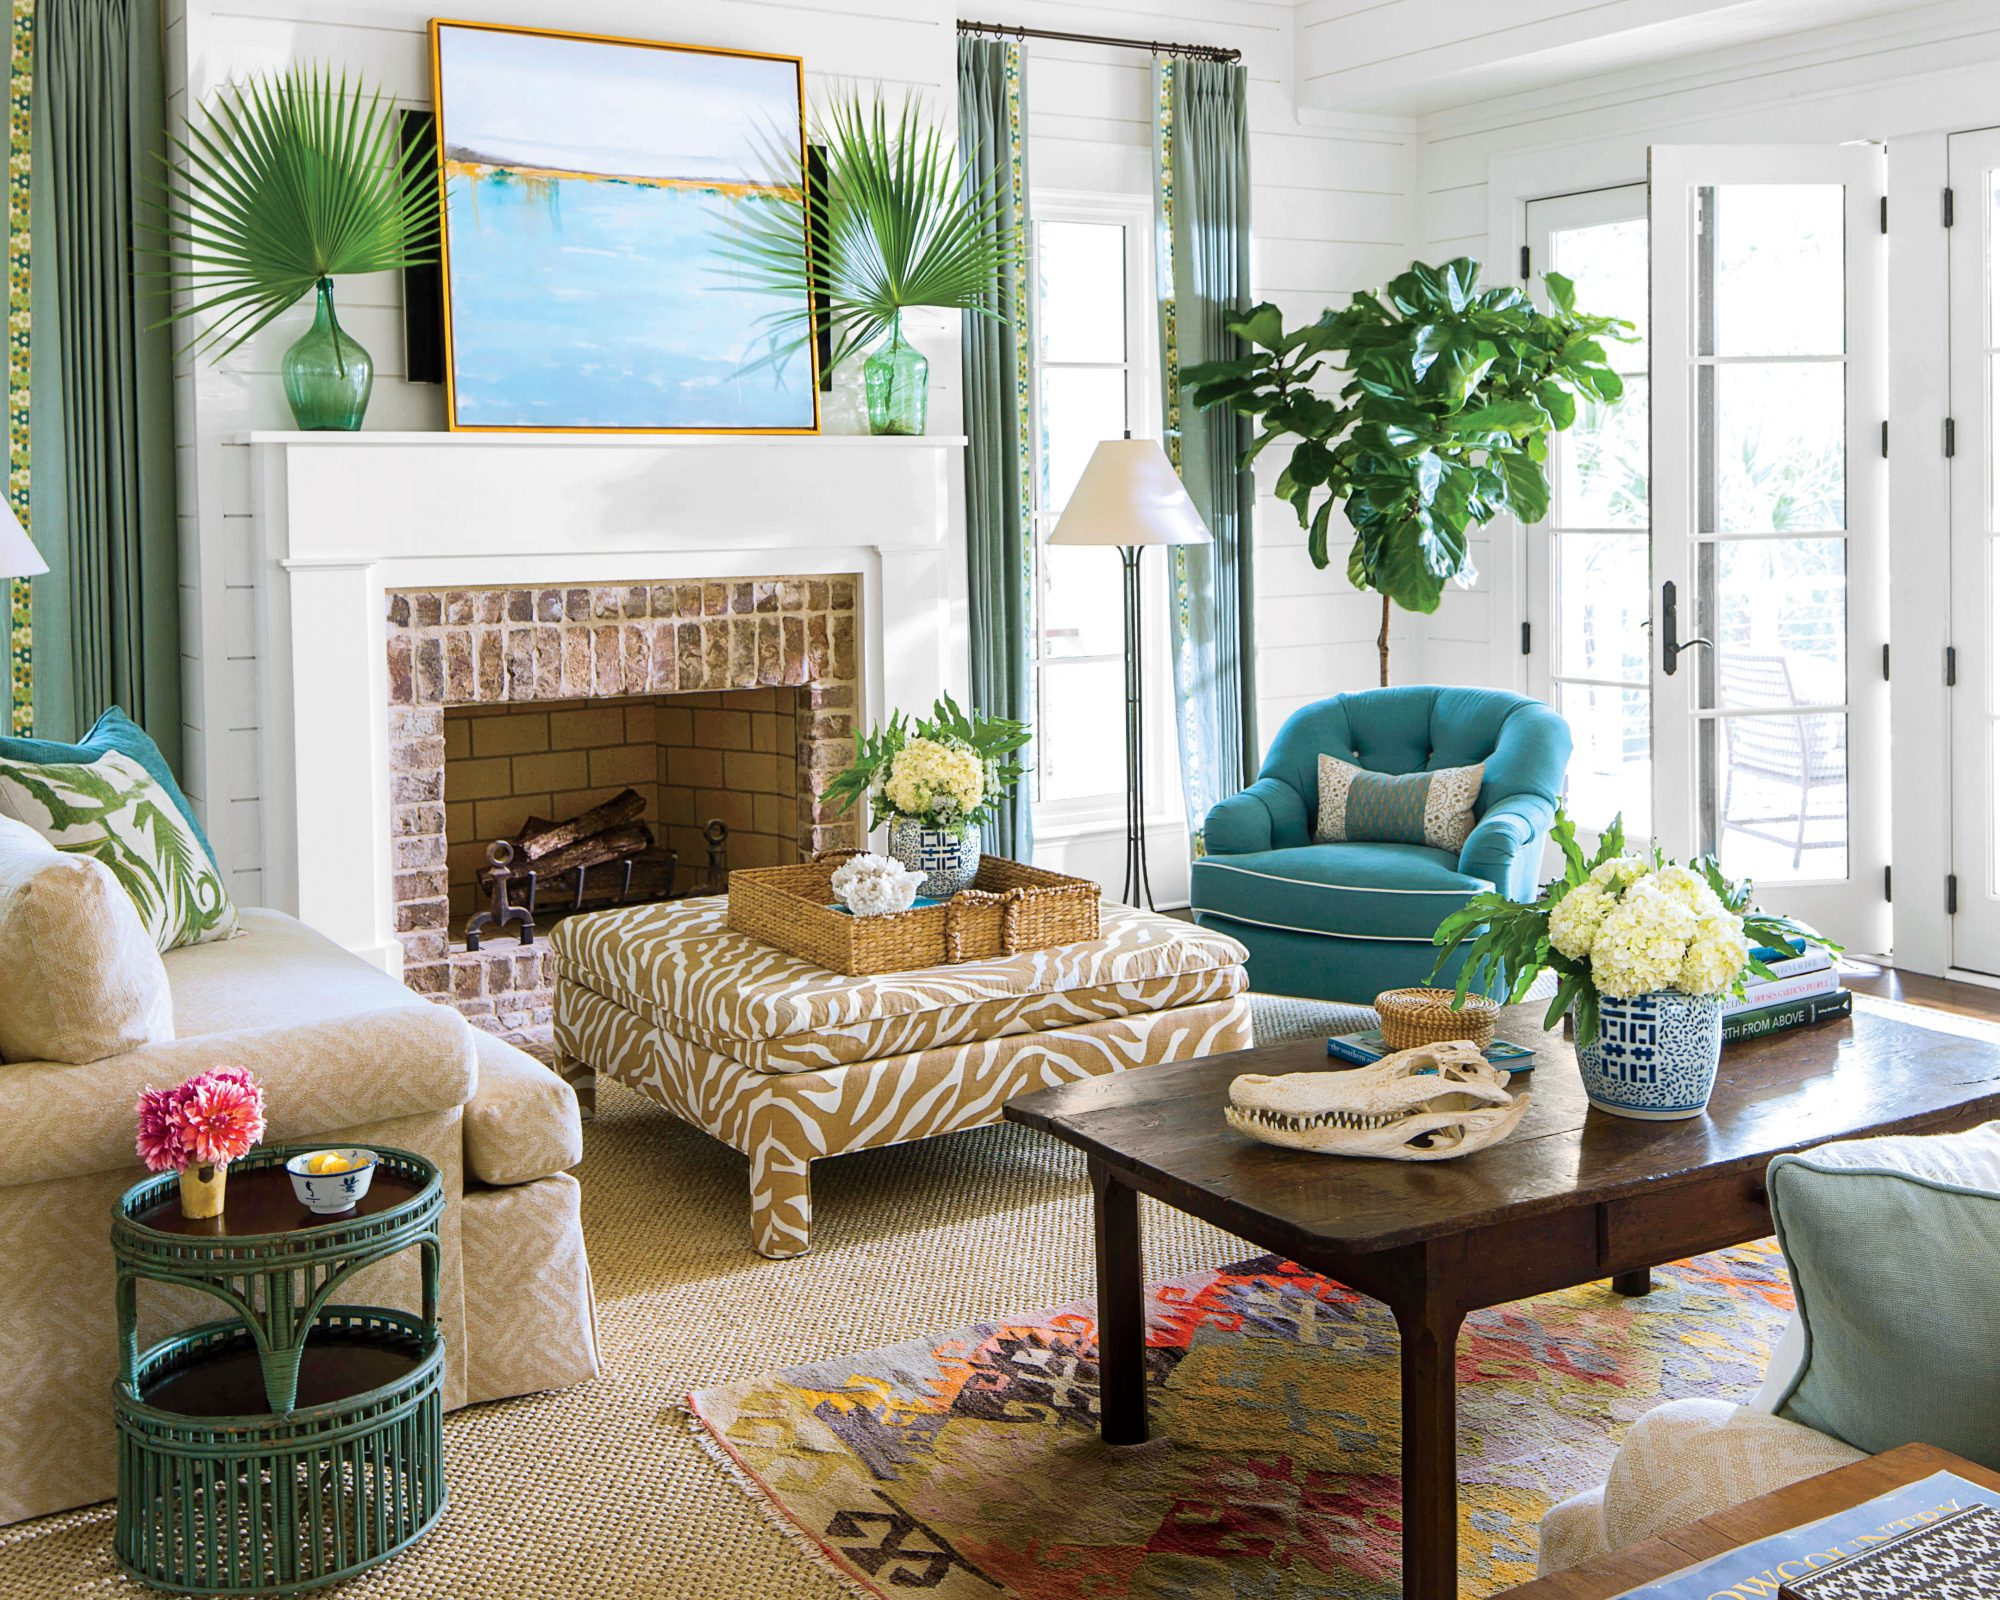 Living Room Ideas Decorating Inspiration 106 living room decorating ideas - southern living